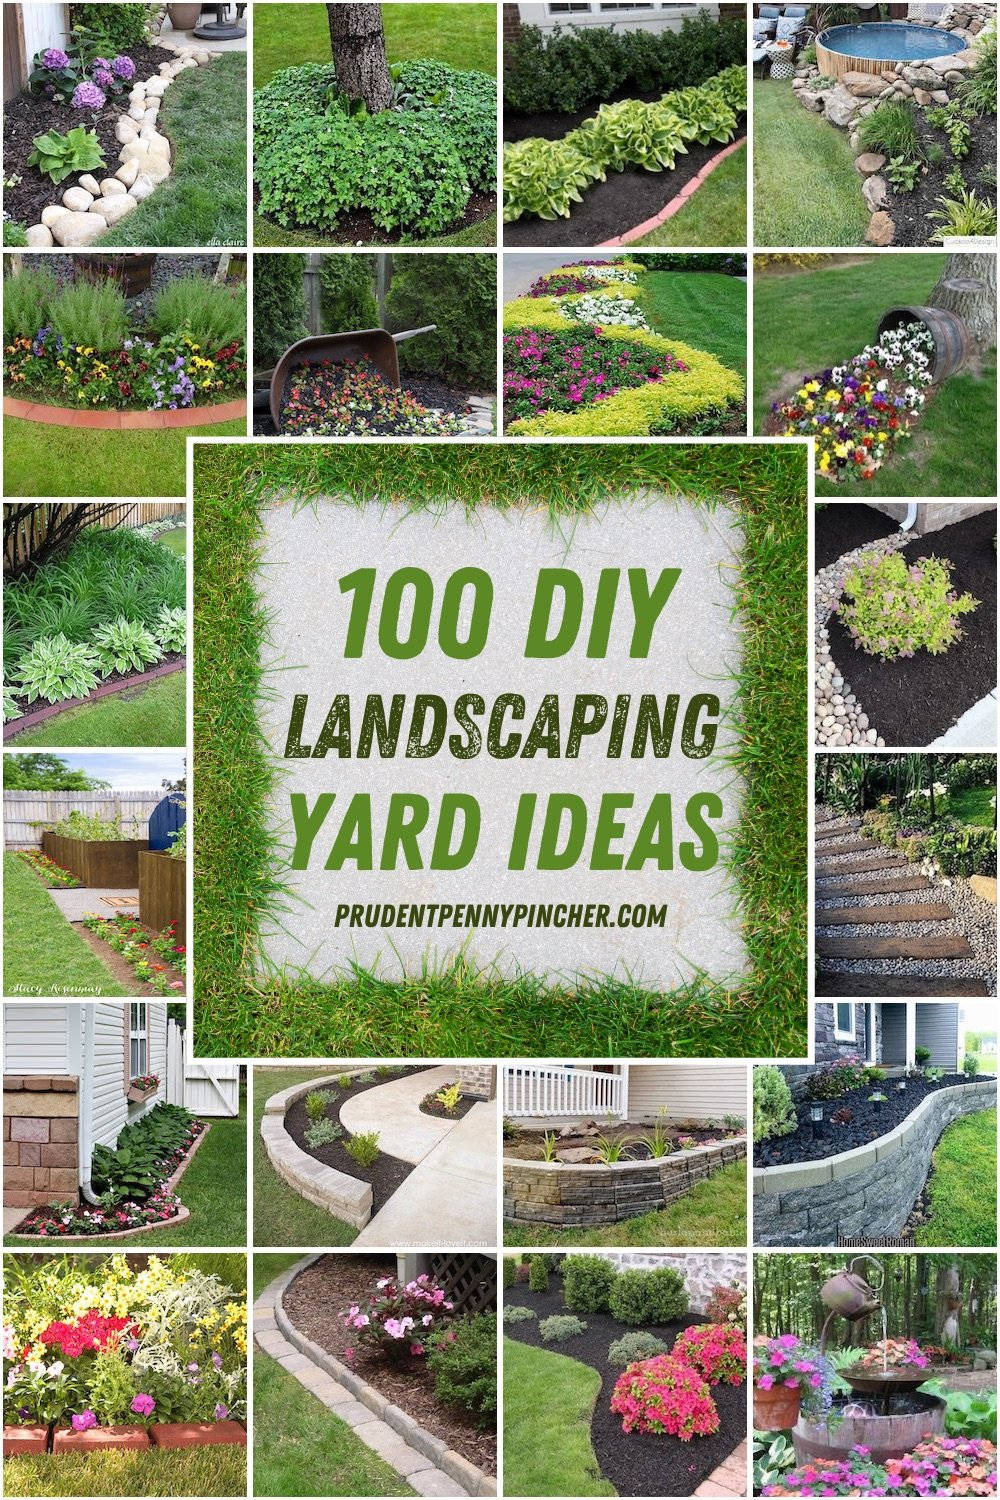 28 Best DIY Landscaping Ideas - Prudent Penny Pincher